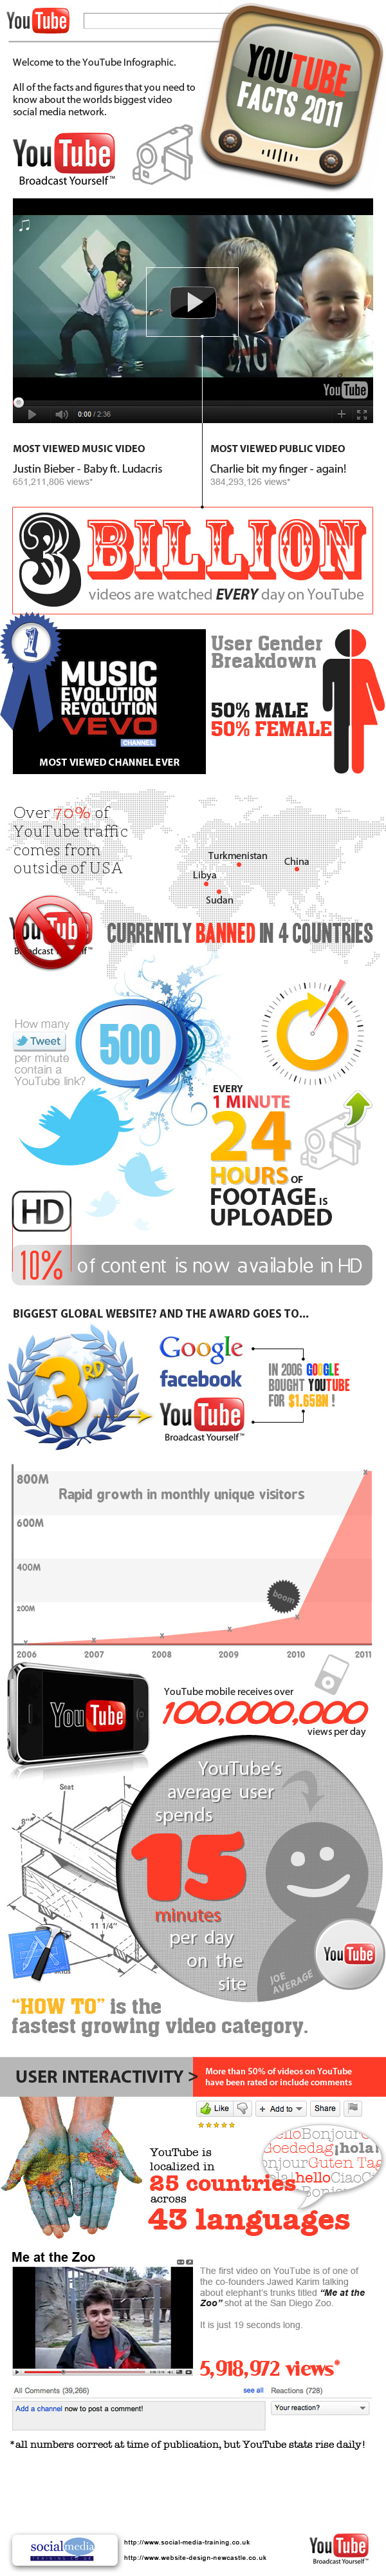 Estadisticas Youtube 2011 Infografia